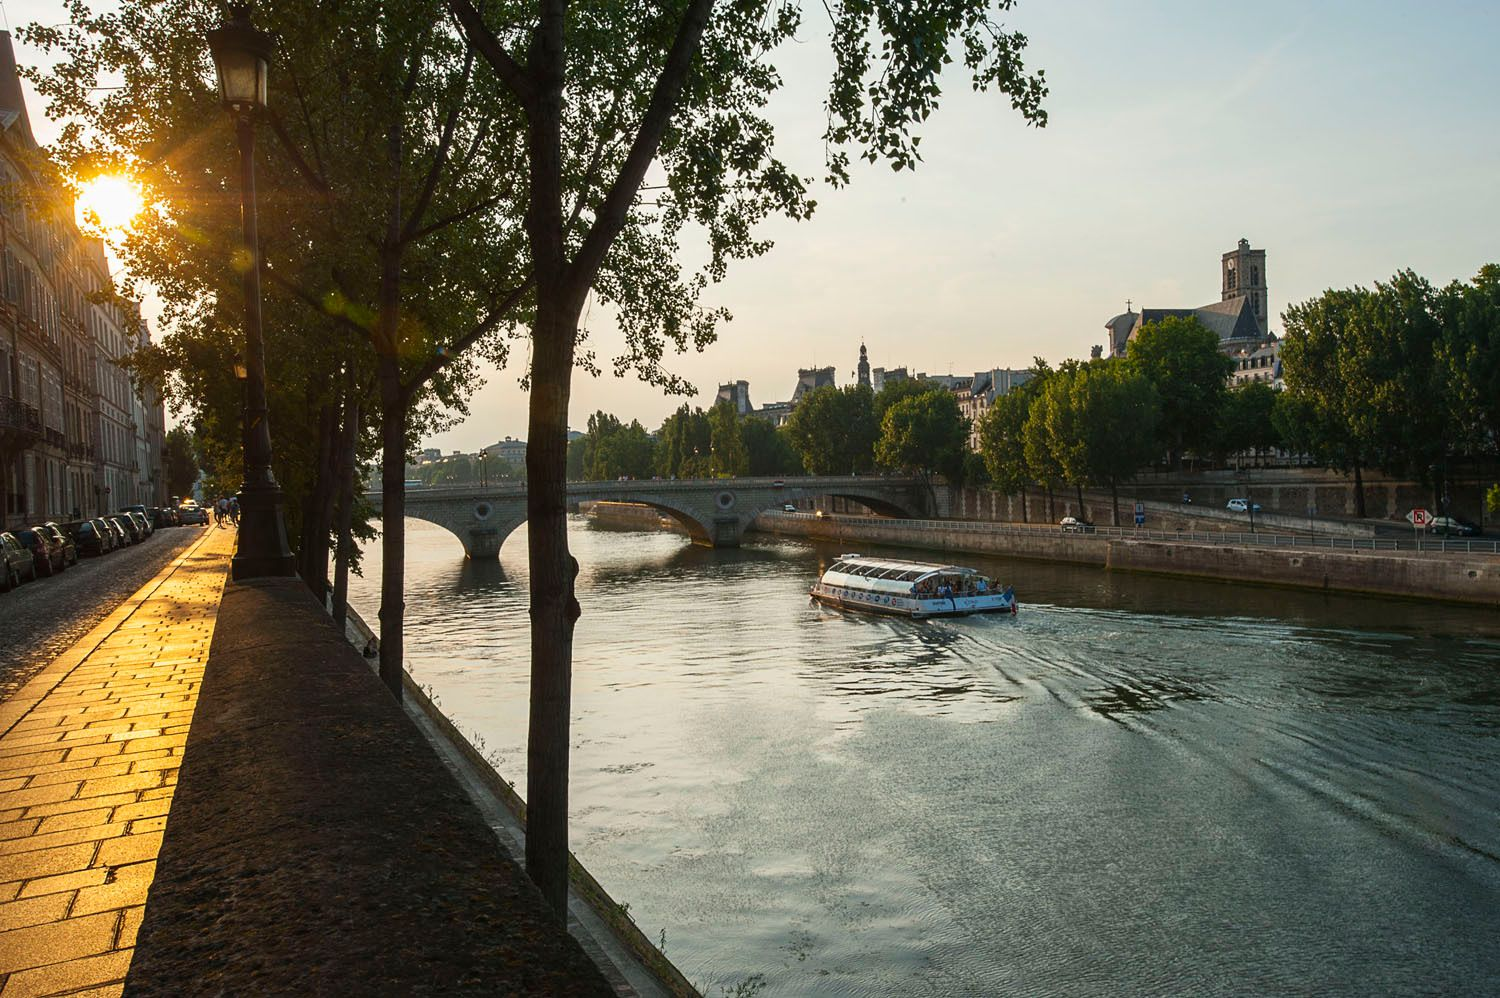 Sunset over the Seine River, Paris, France